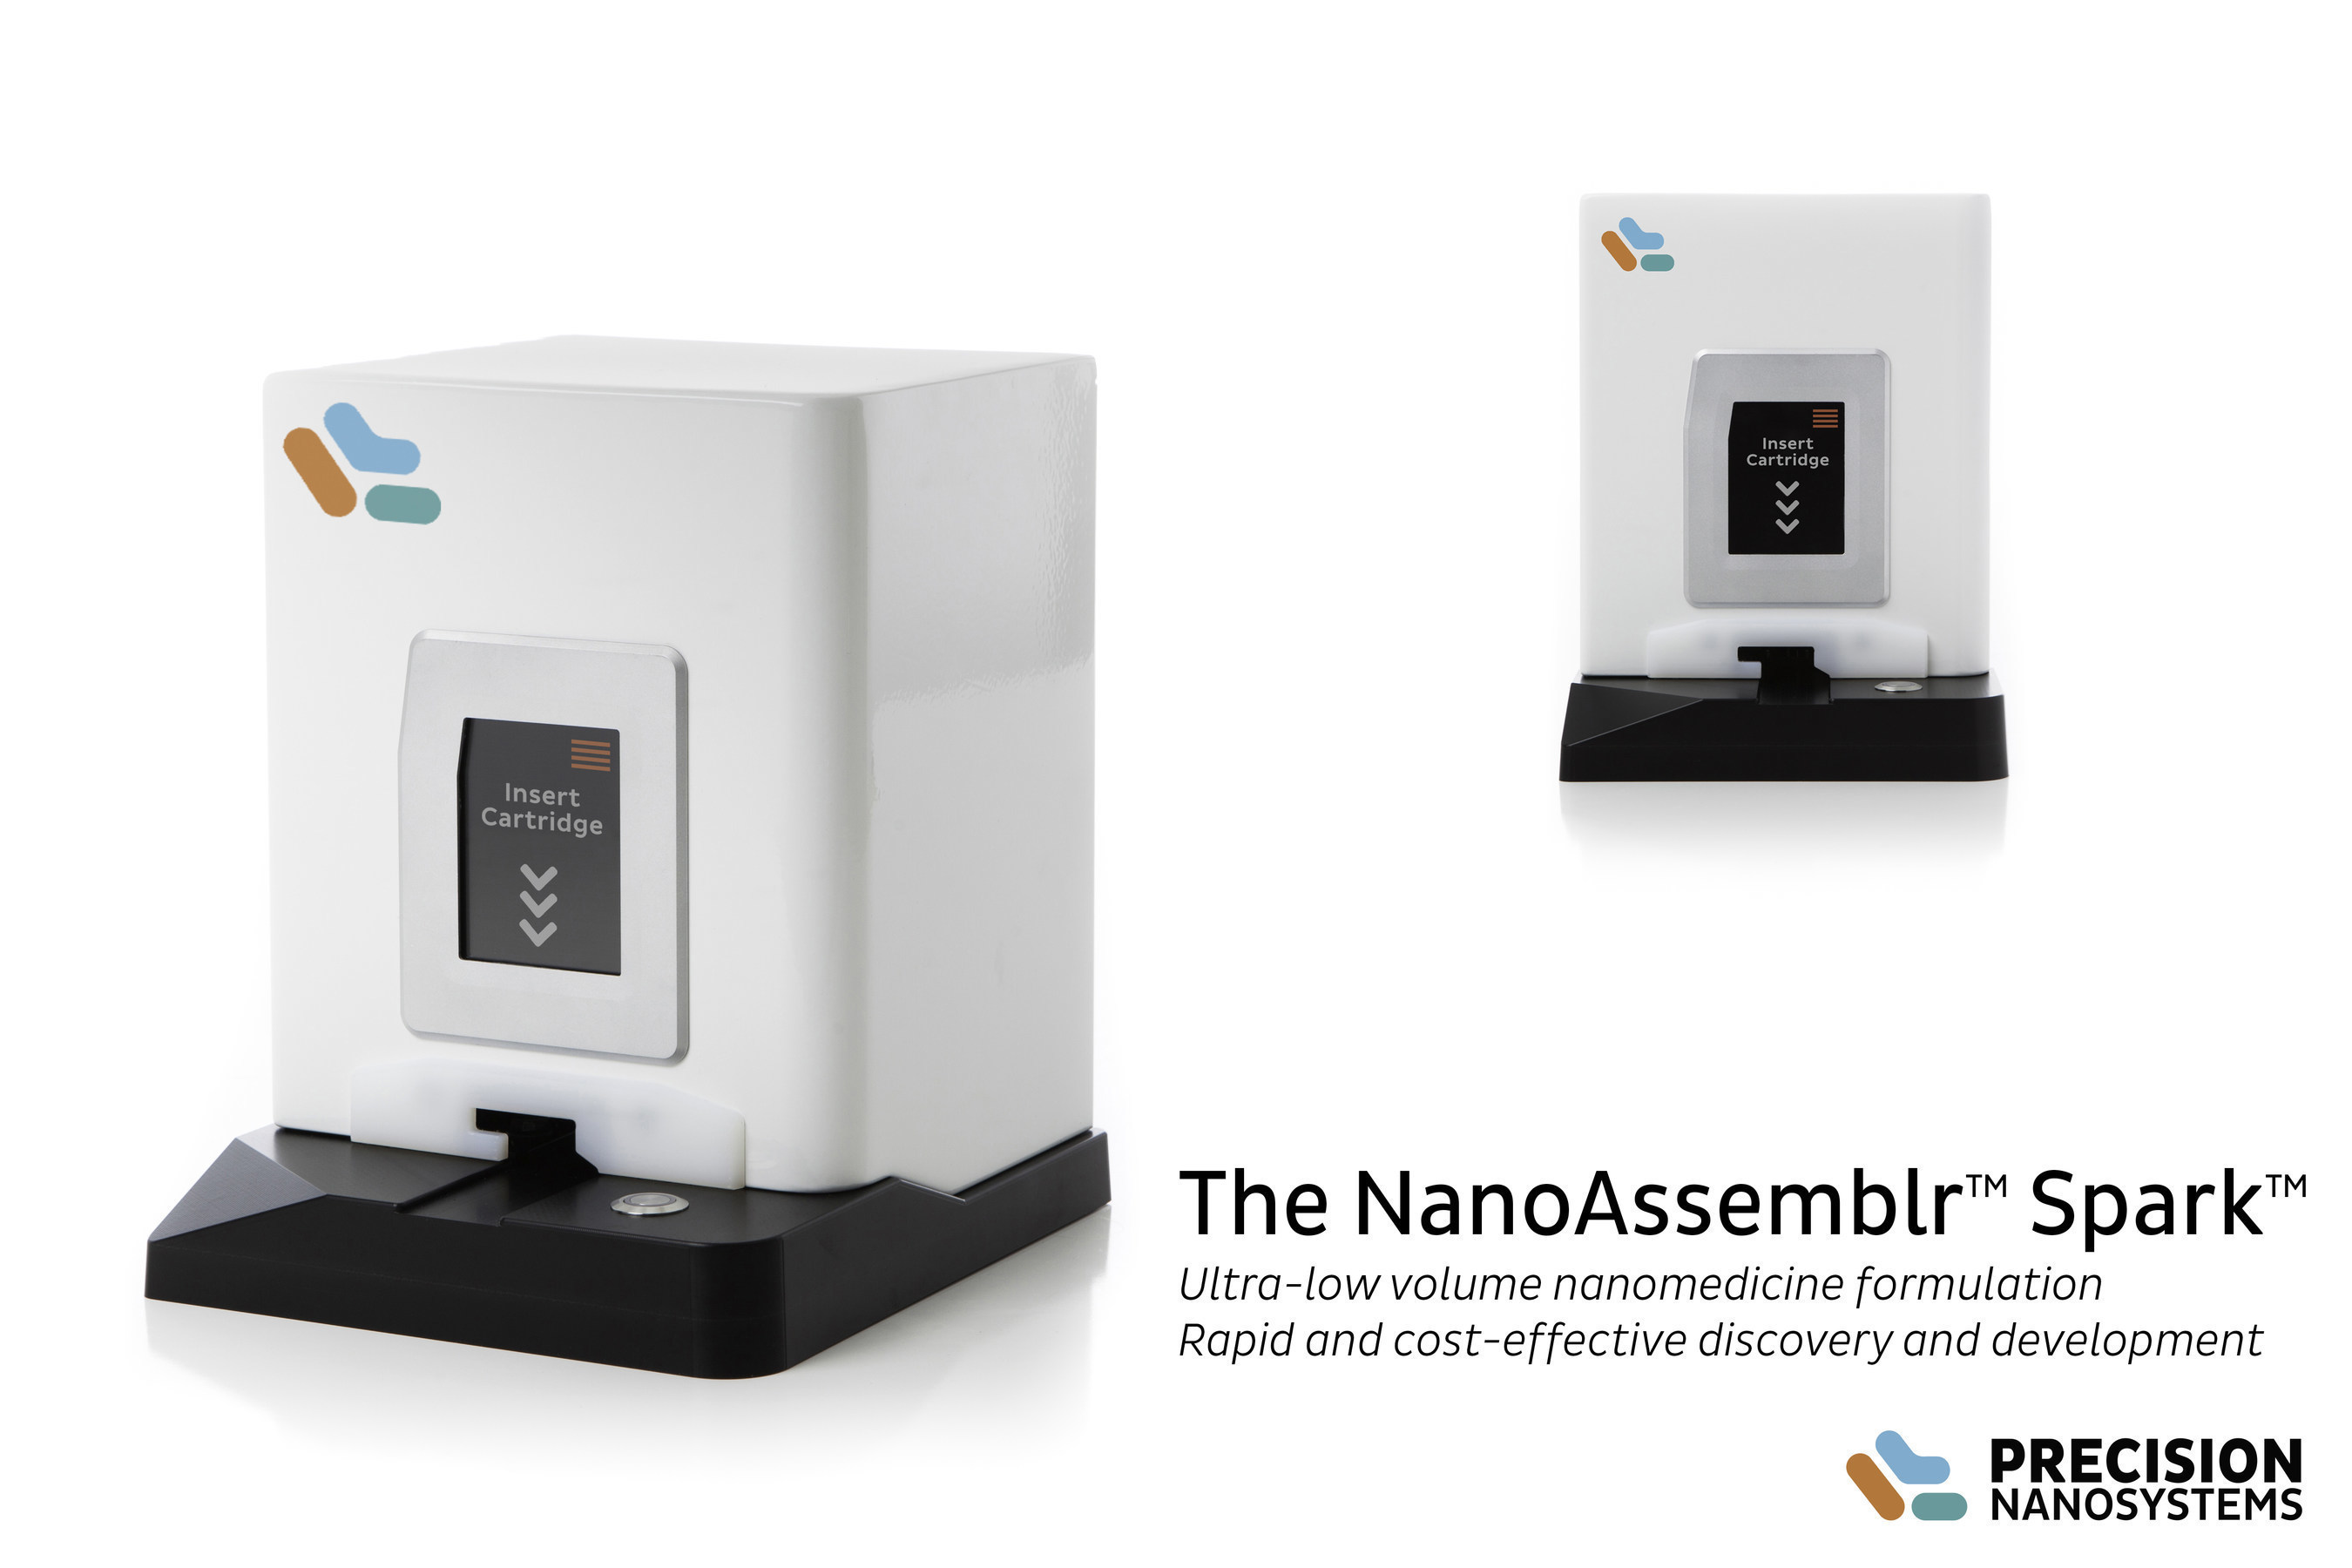 The NanoAssemblr Spark instrument from Precision NanoSystems uses proprietary microfluidics technology for the controlled and reproducible manufacture of 25 µL - 250 µL nanoparticles in less than 10 seconds.